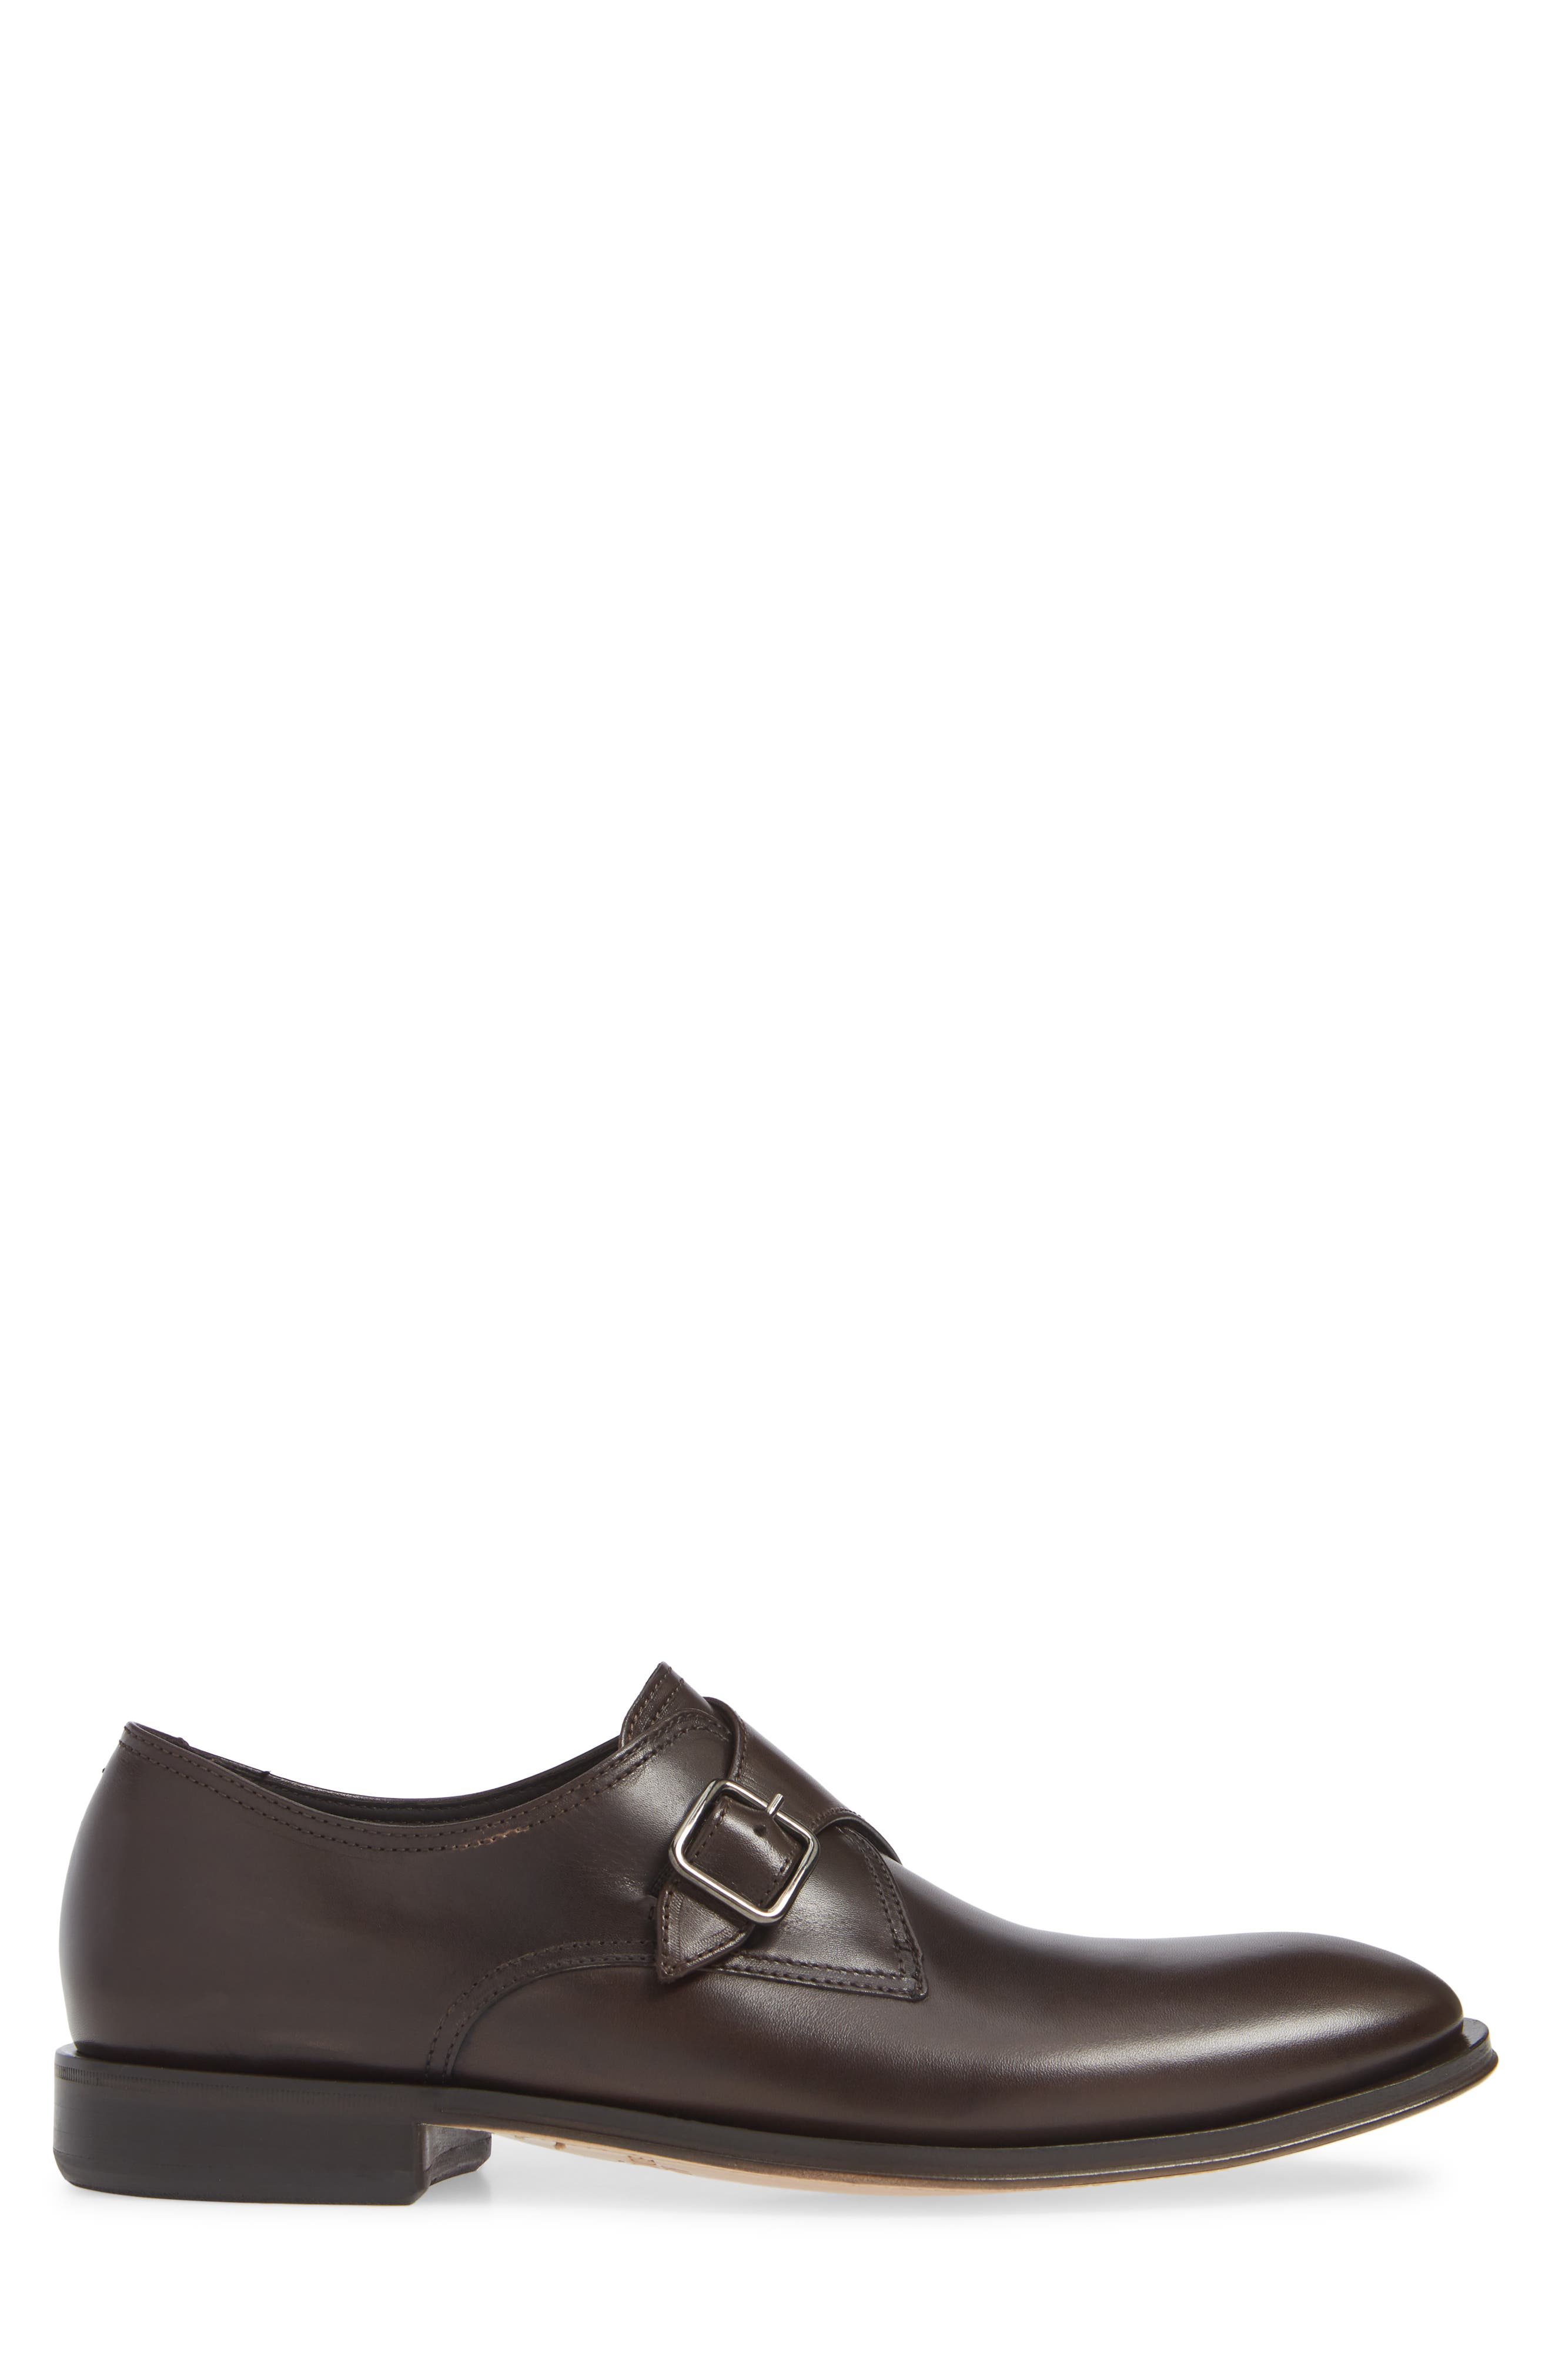 ALLEN EDMONDS, Umbria Monk Strap Shoe, Alternate thumbnail 3, color, DARK BROWN LEATHER